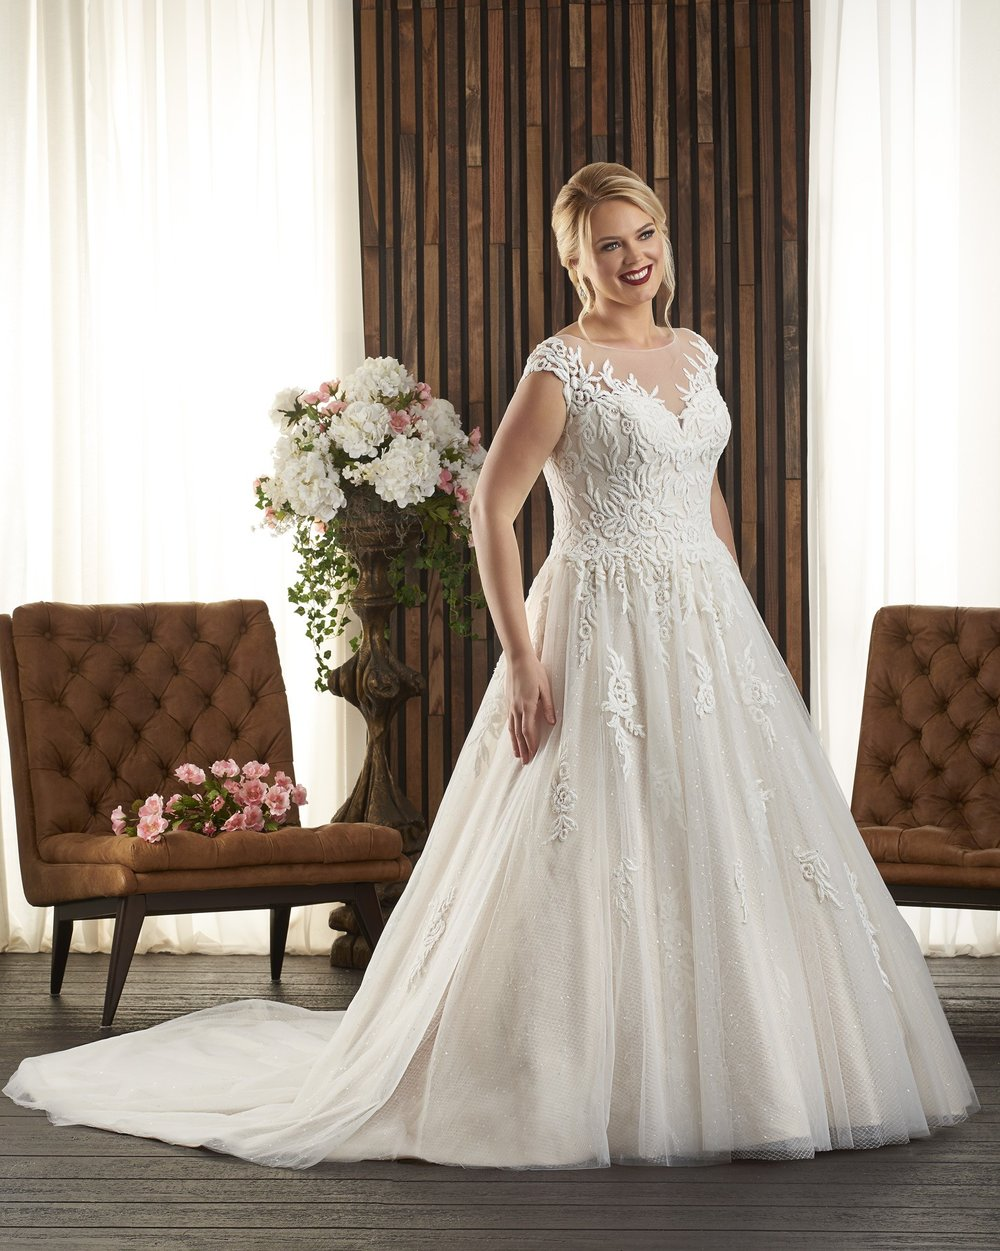 BonnyBridal-BridesbyYoung-PlusSizeWeddingDress-1724.jpg